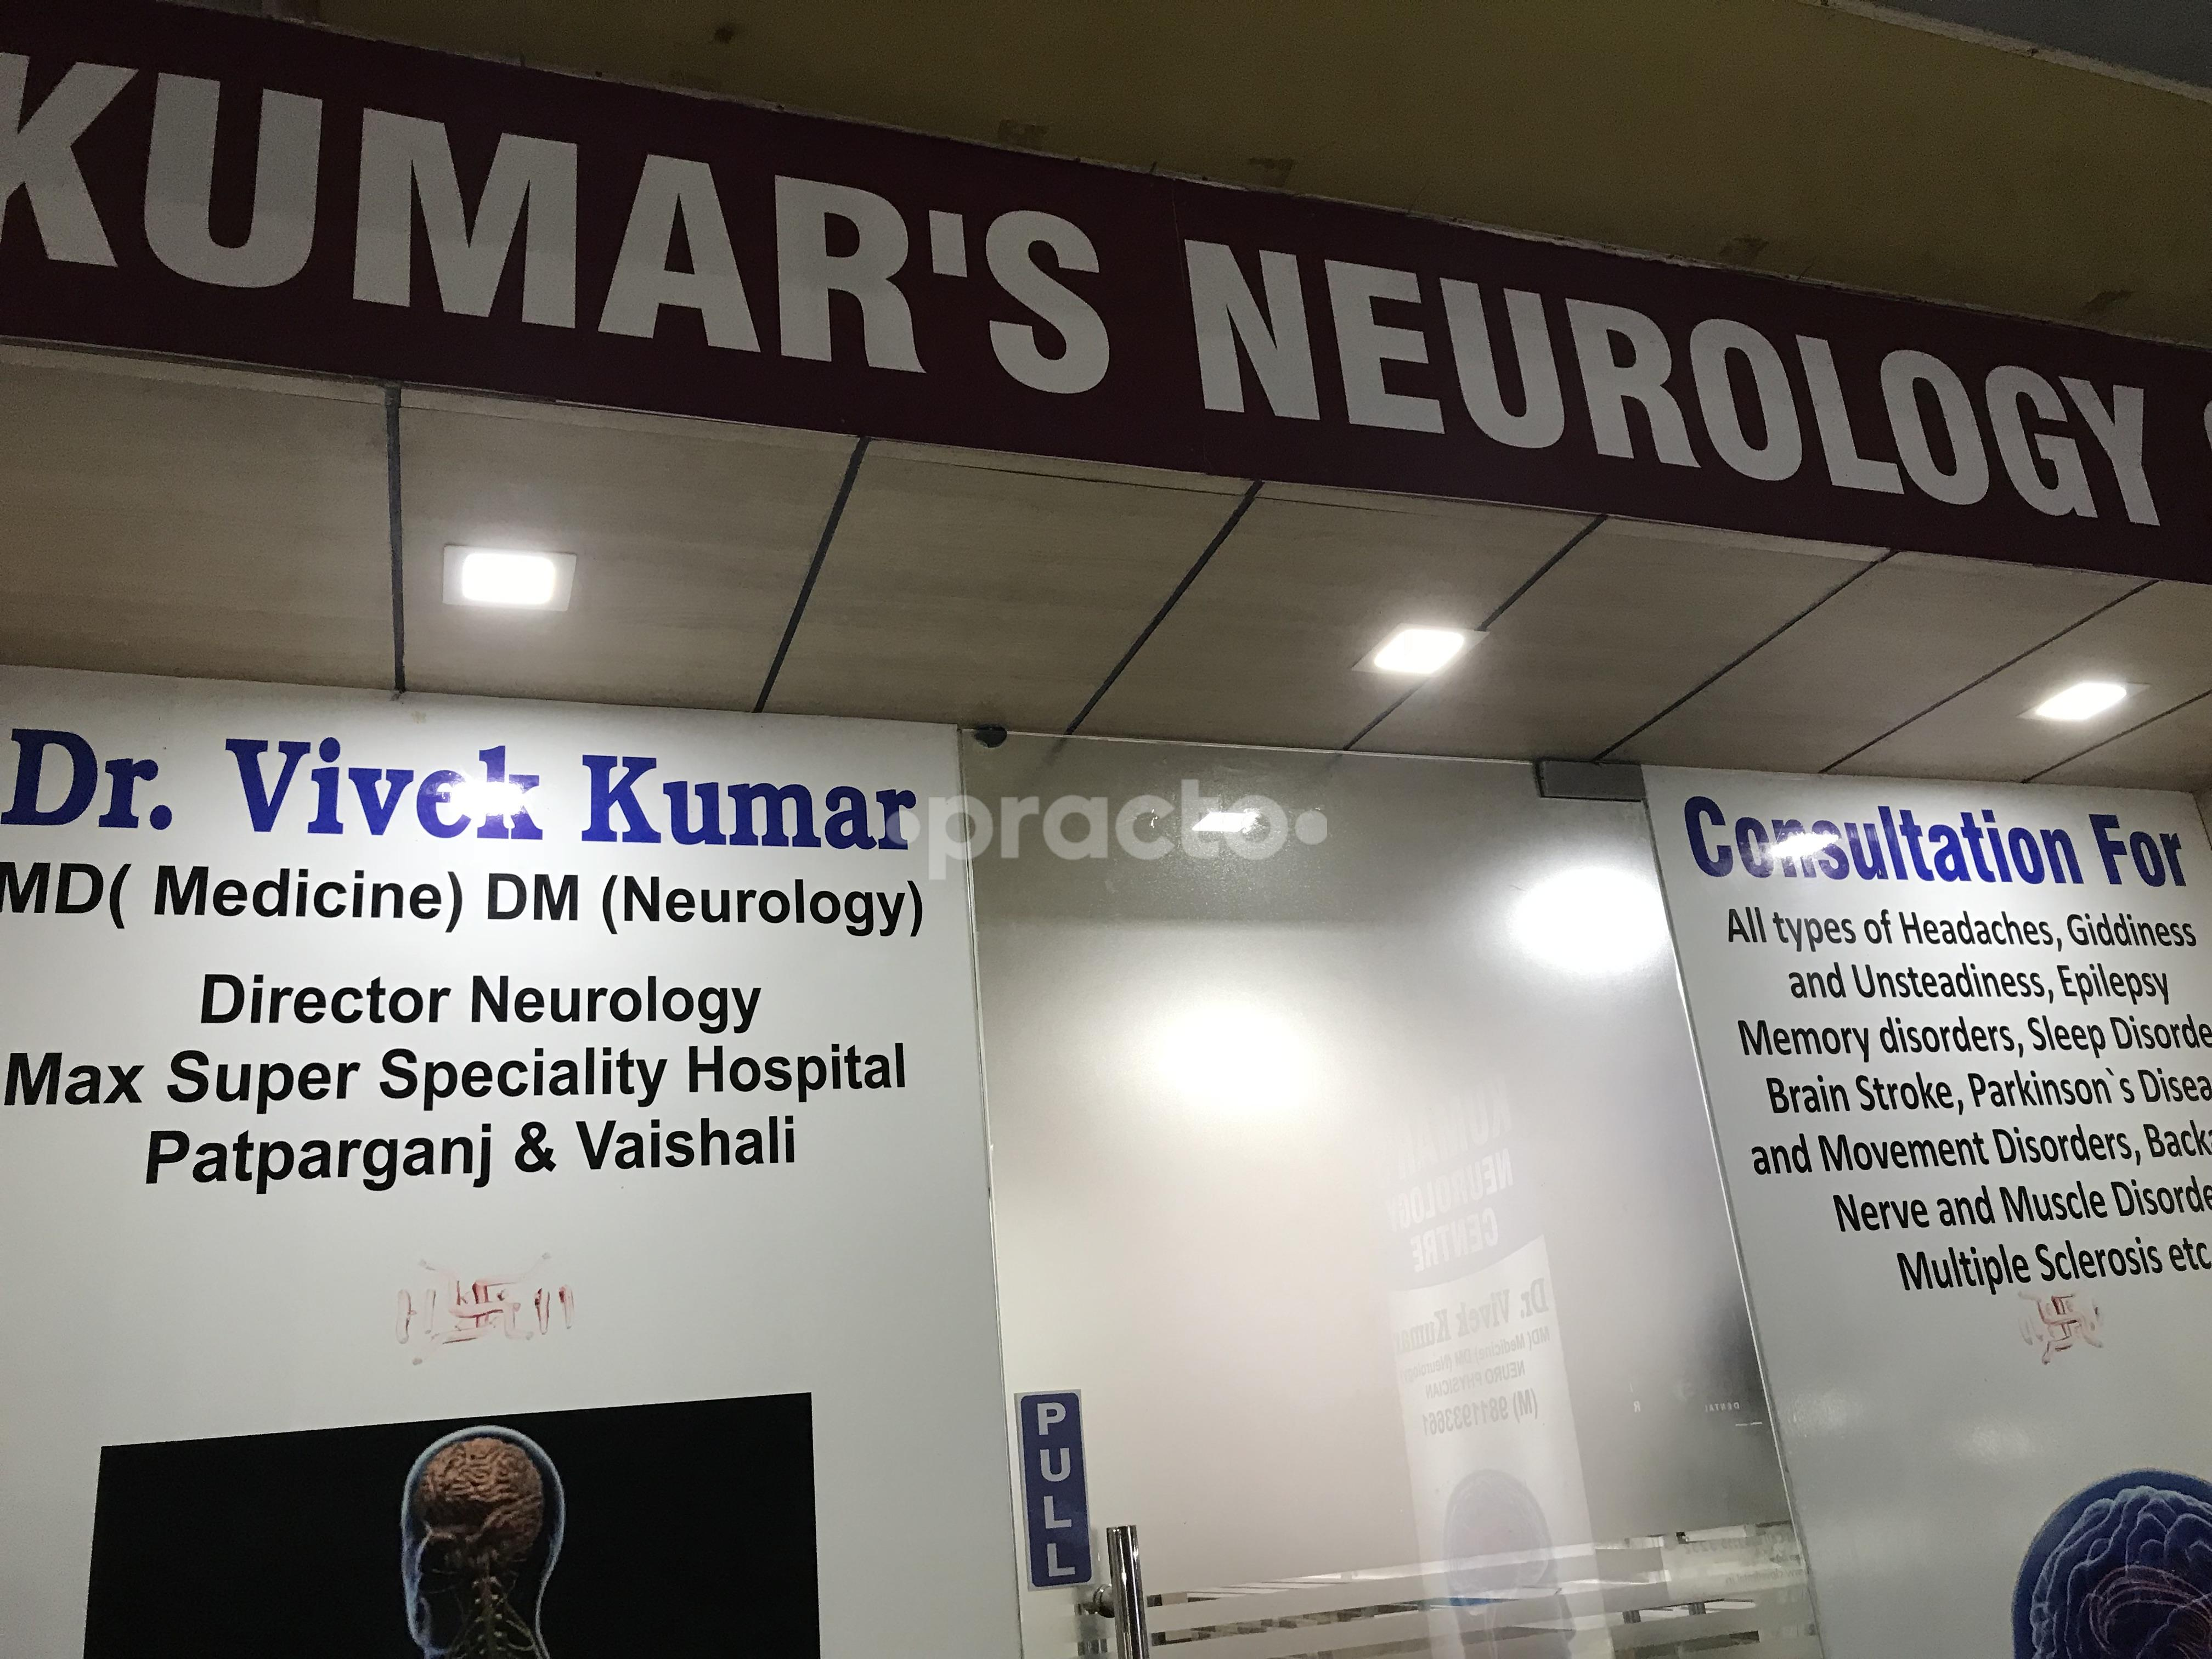 Neurologists In Ghaziabad - Instant Appointment Booking, View Fees